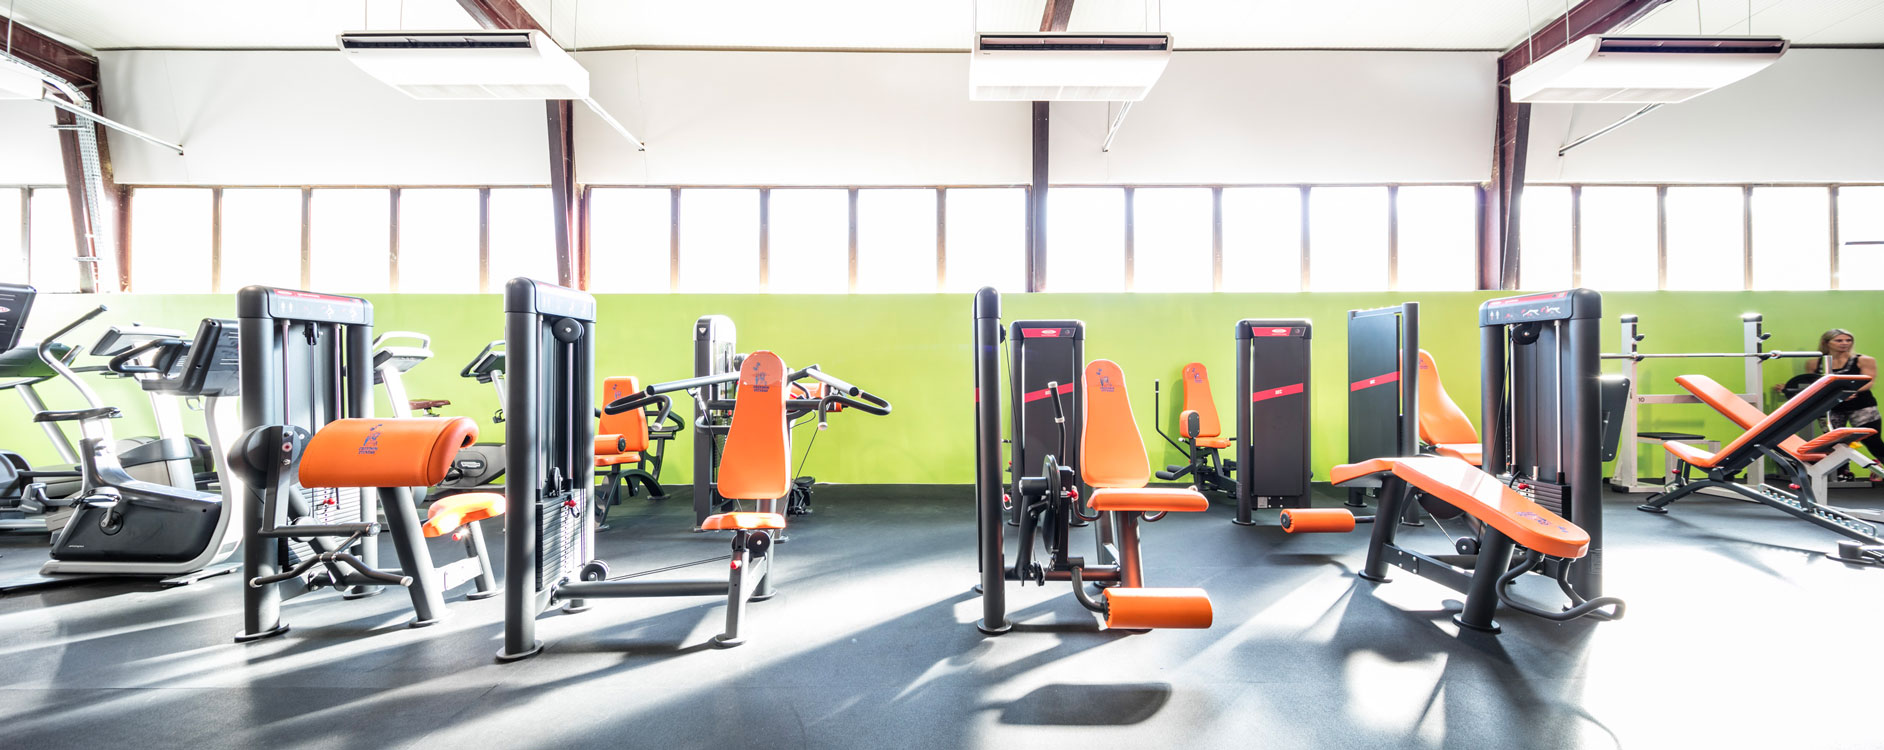 Freedom_Fitness_Aix_Les_Bains_-_024_-_MD